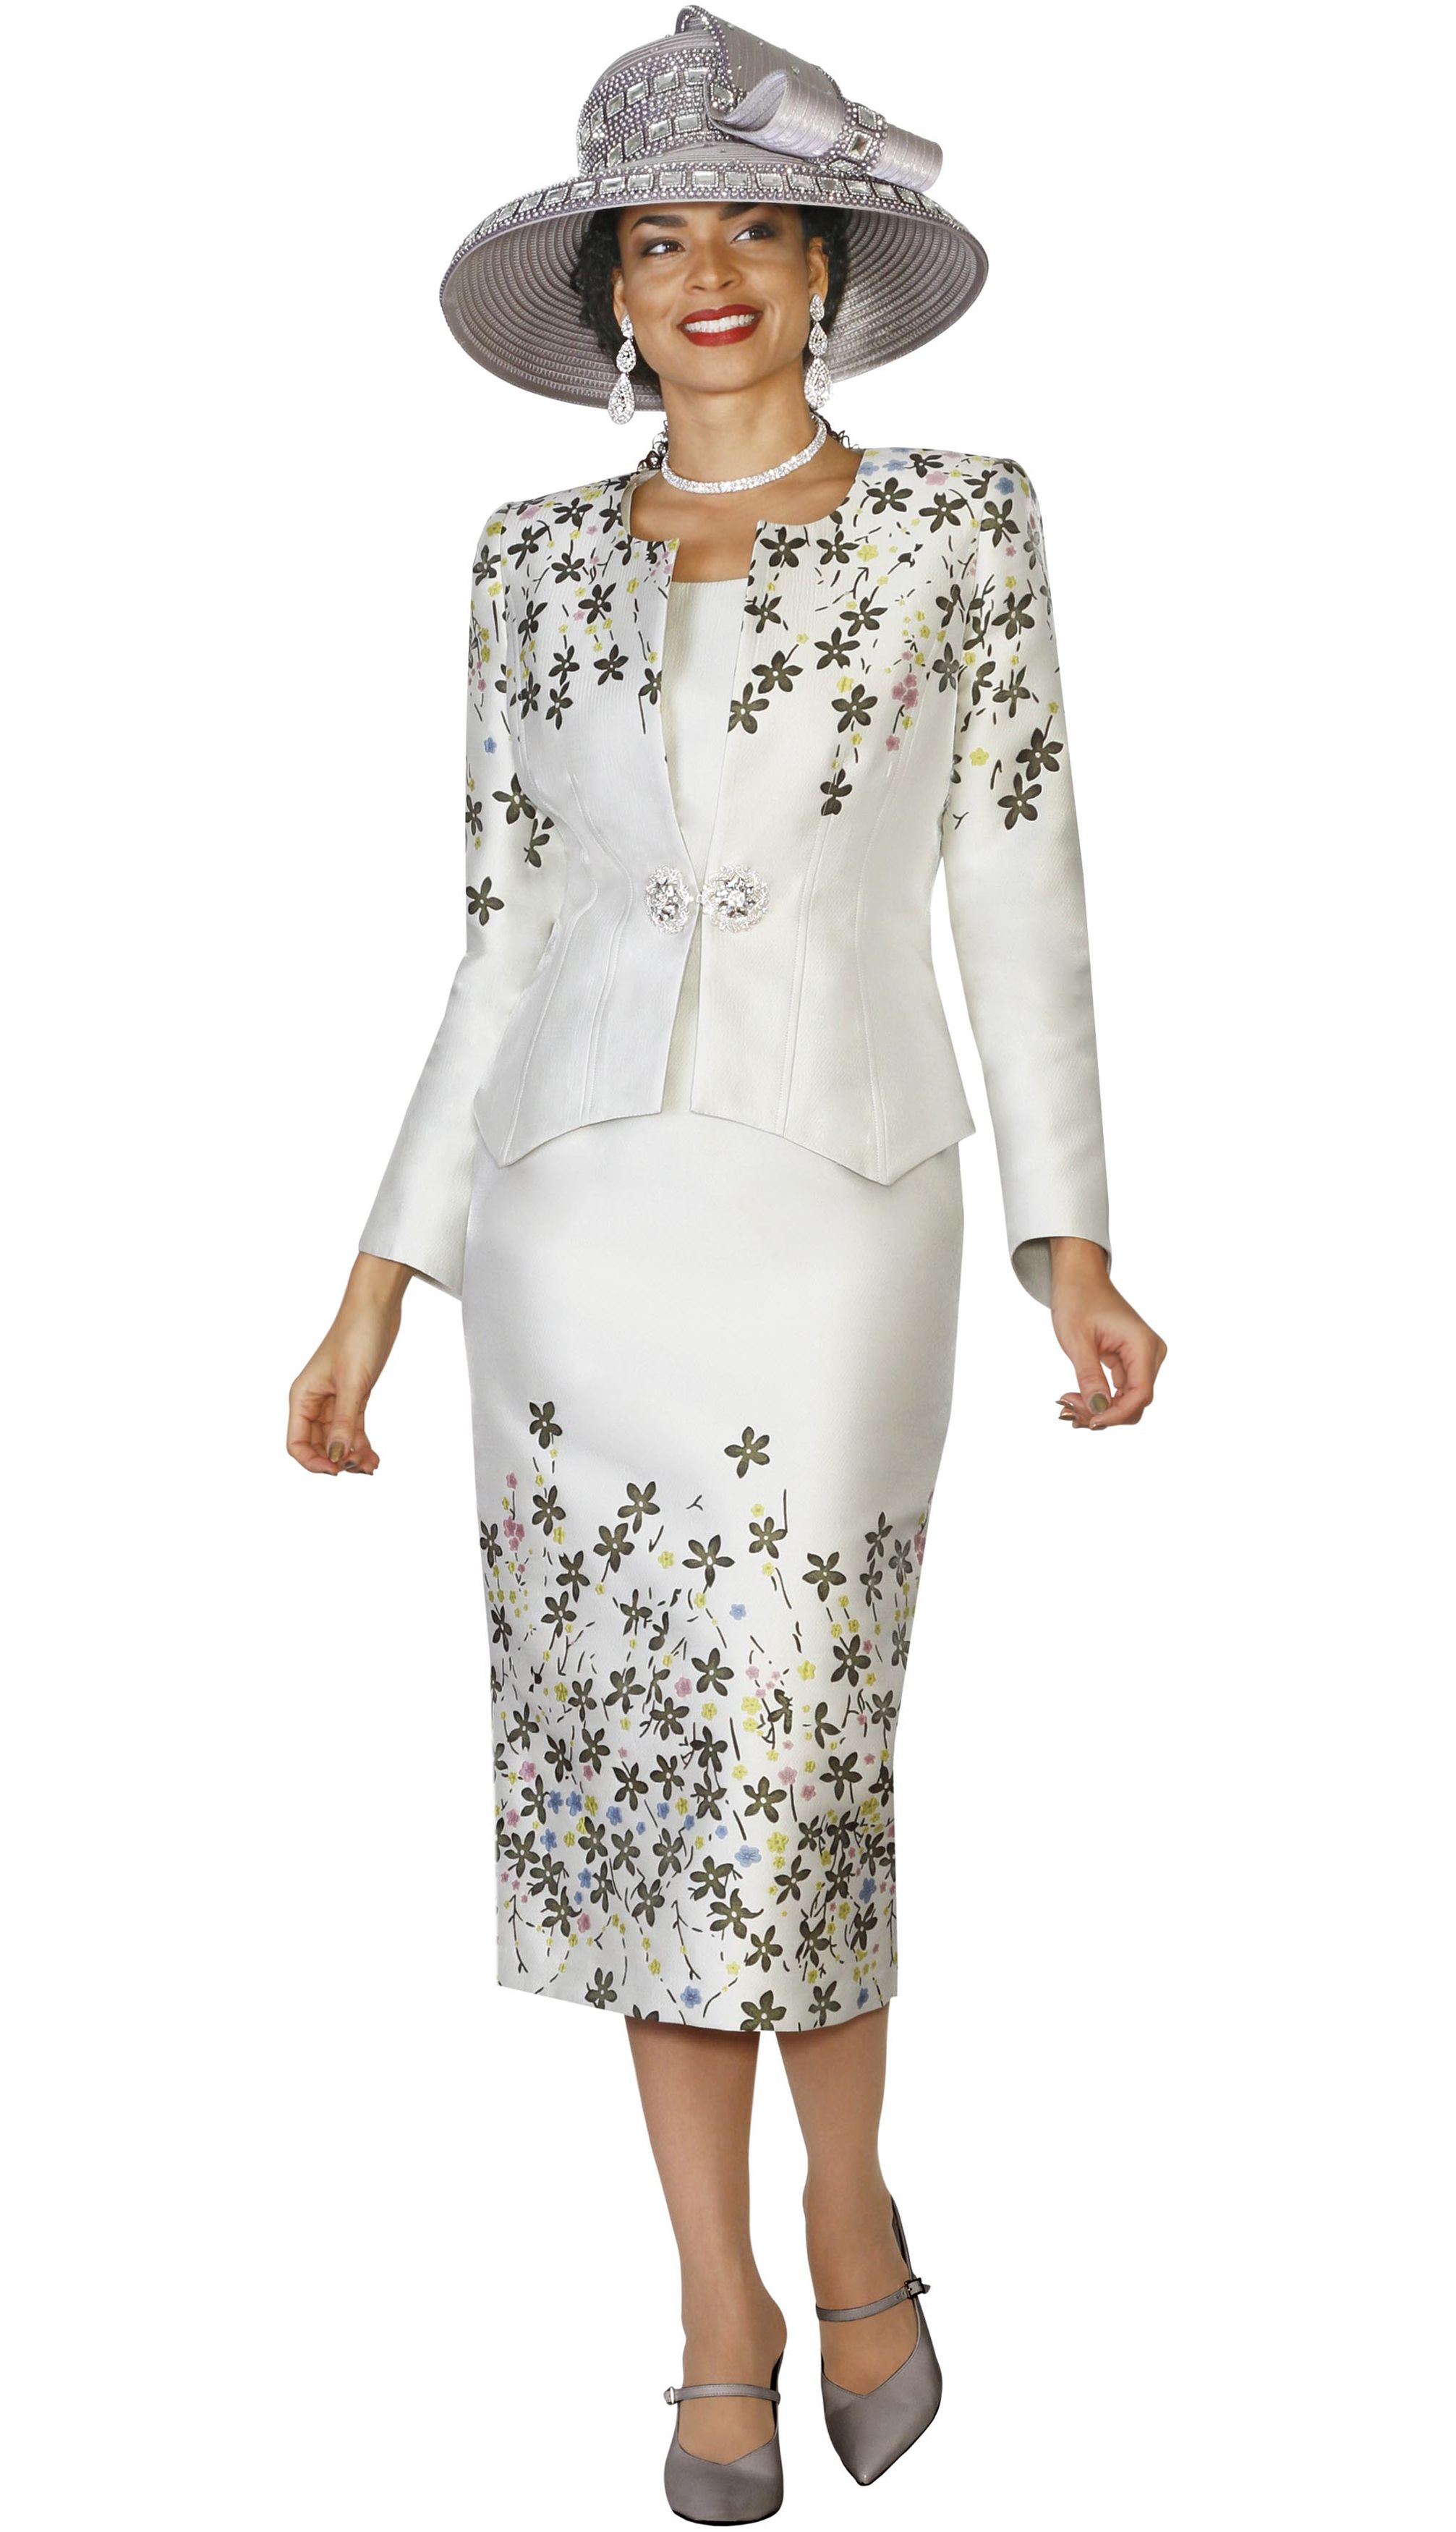 cce84ee7a2384b Style Lily and Taylor 4137 3 Piece Womens Skirt Suit With Multi Floral  Print Design Colors Silver With Multi Sizes 4 6 8 10 12 14 16 18 20 22 24